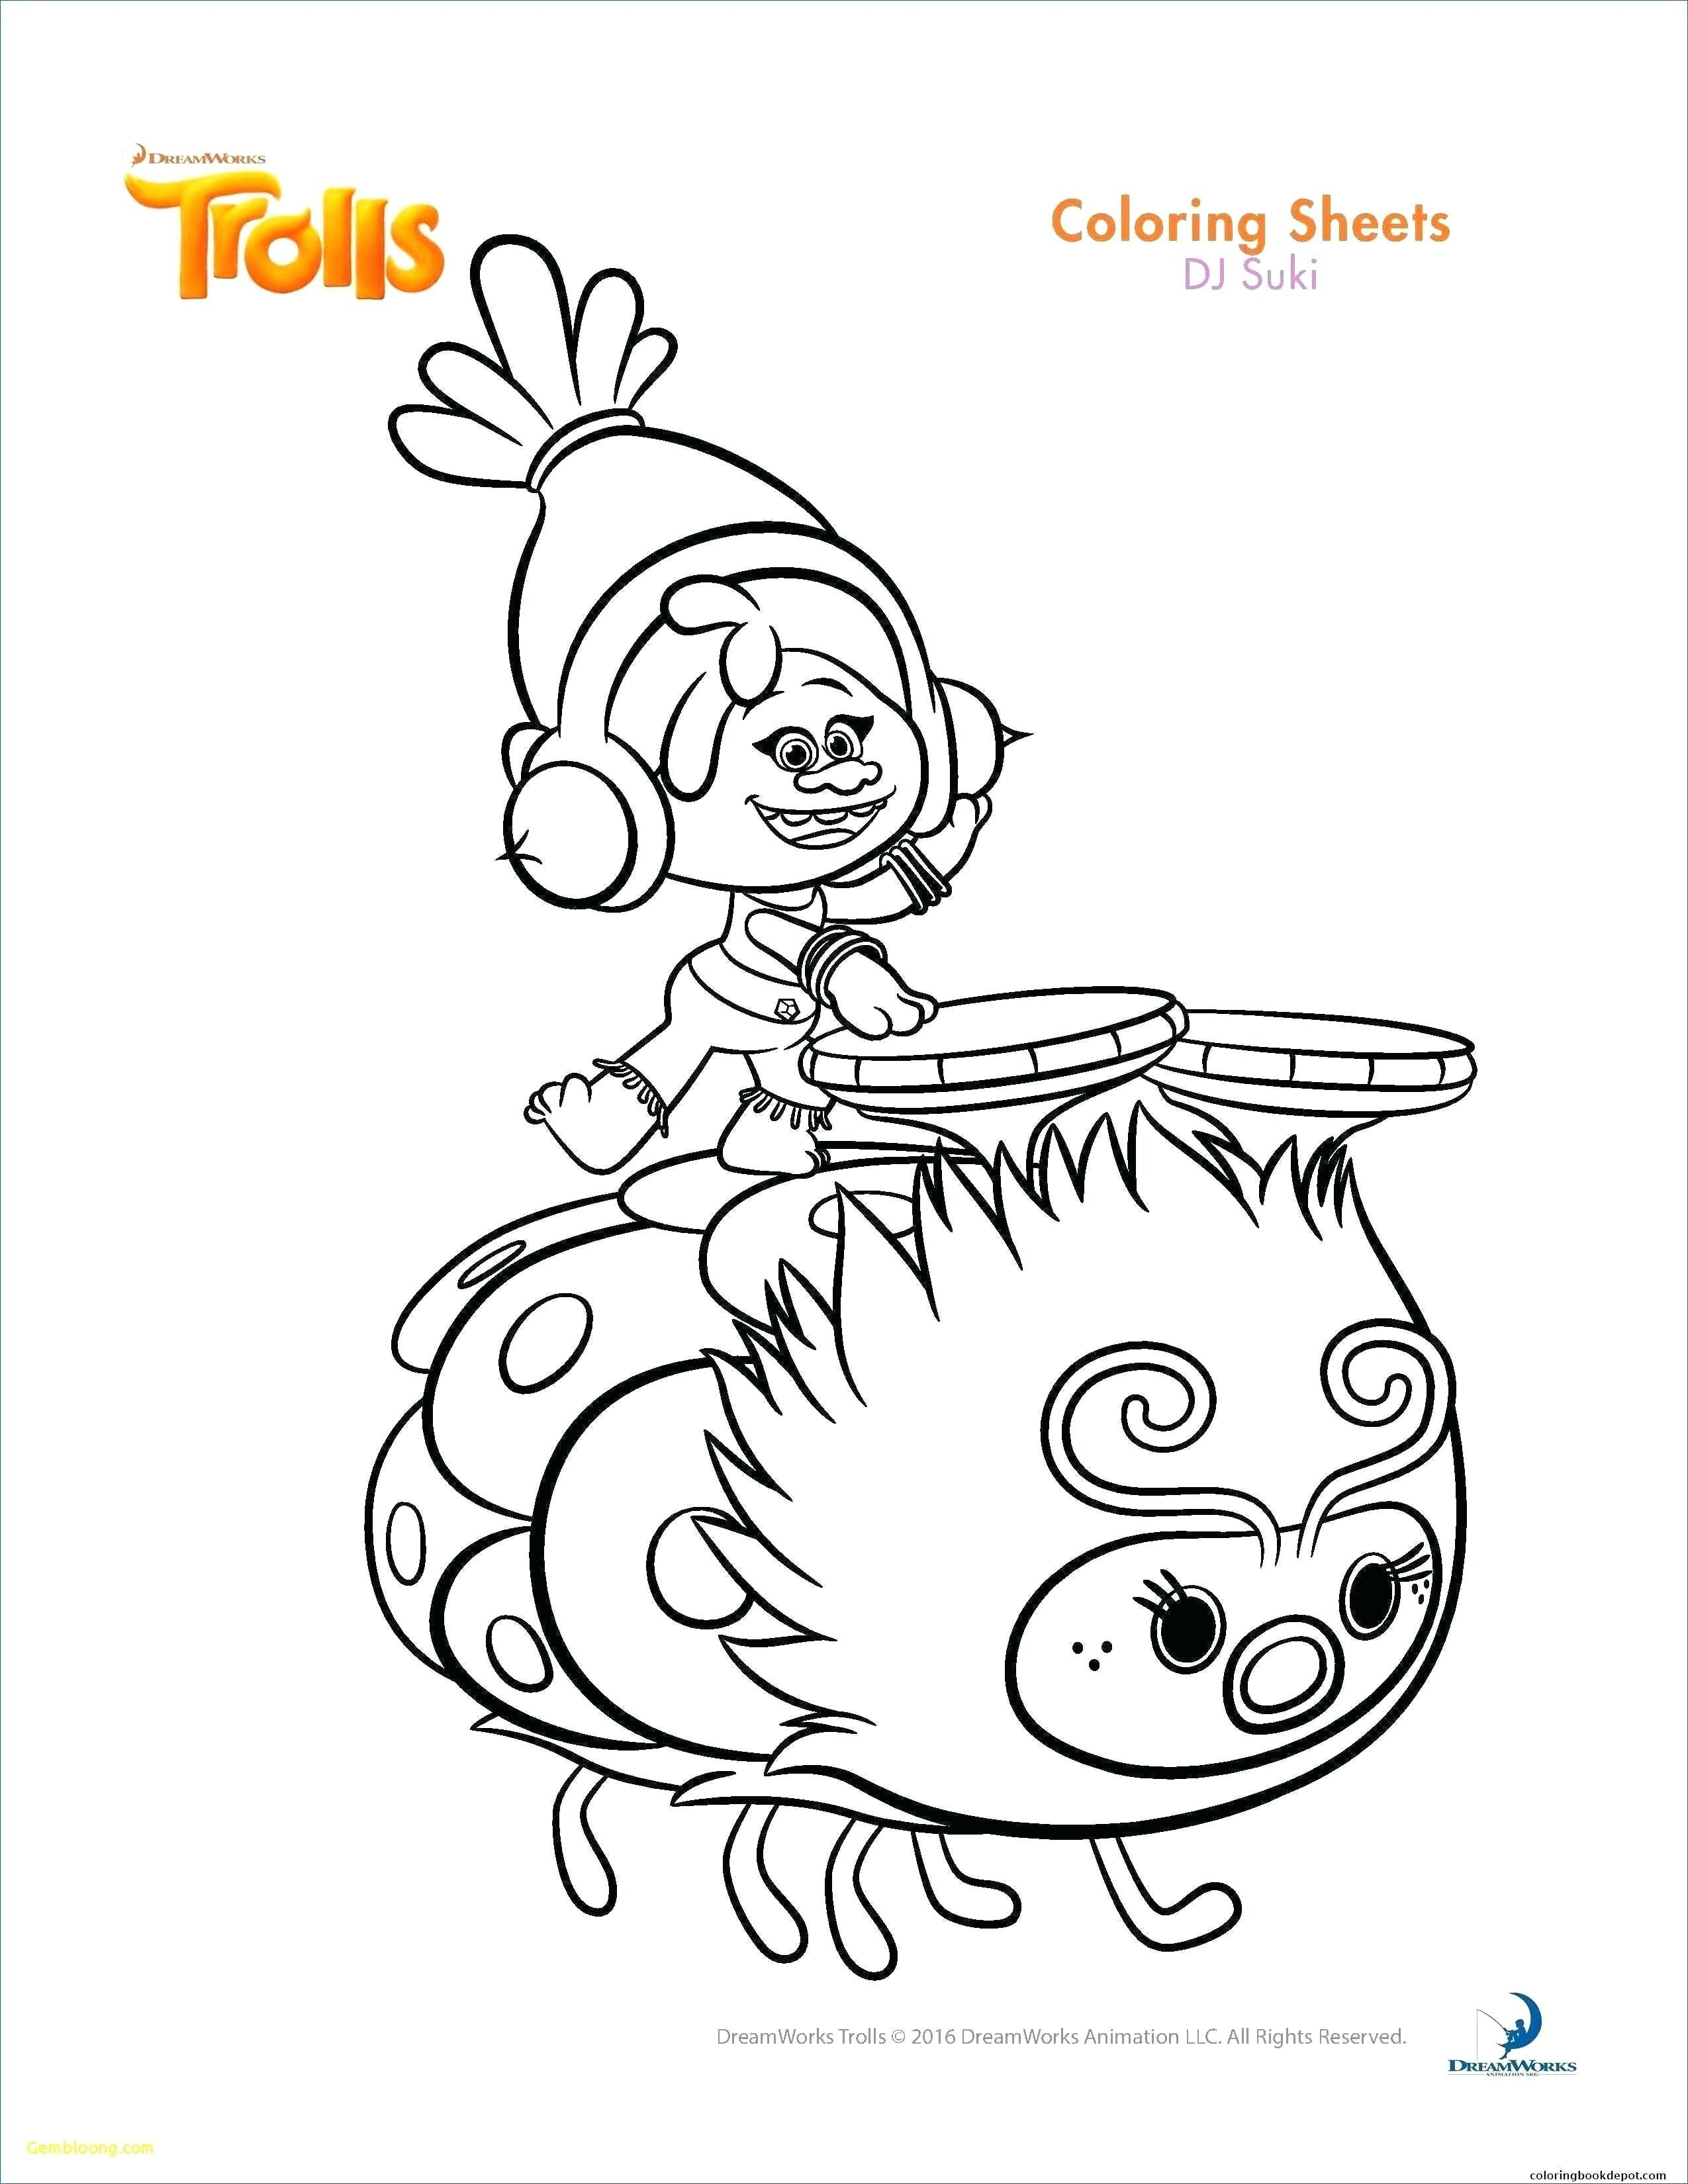 Trolls Movie Coloring Pages Best Coloring Pages For Kids Poppy Coloring Page Disney Coloring Pages Princess Coloring Pages